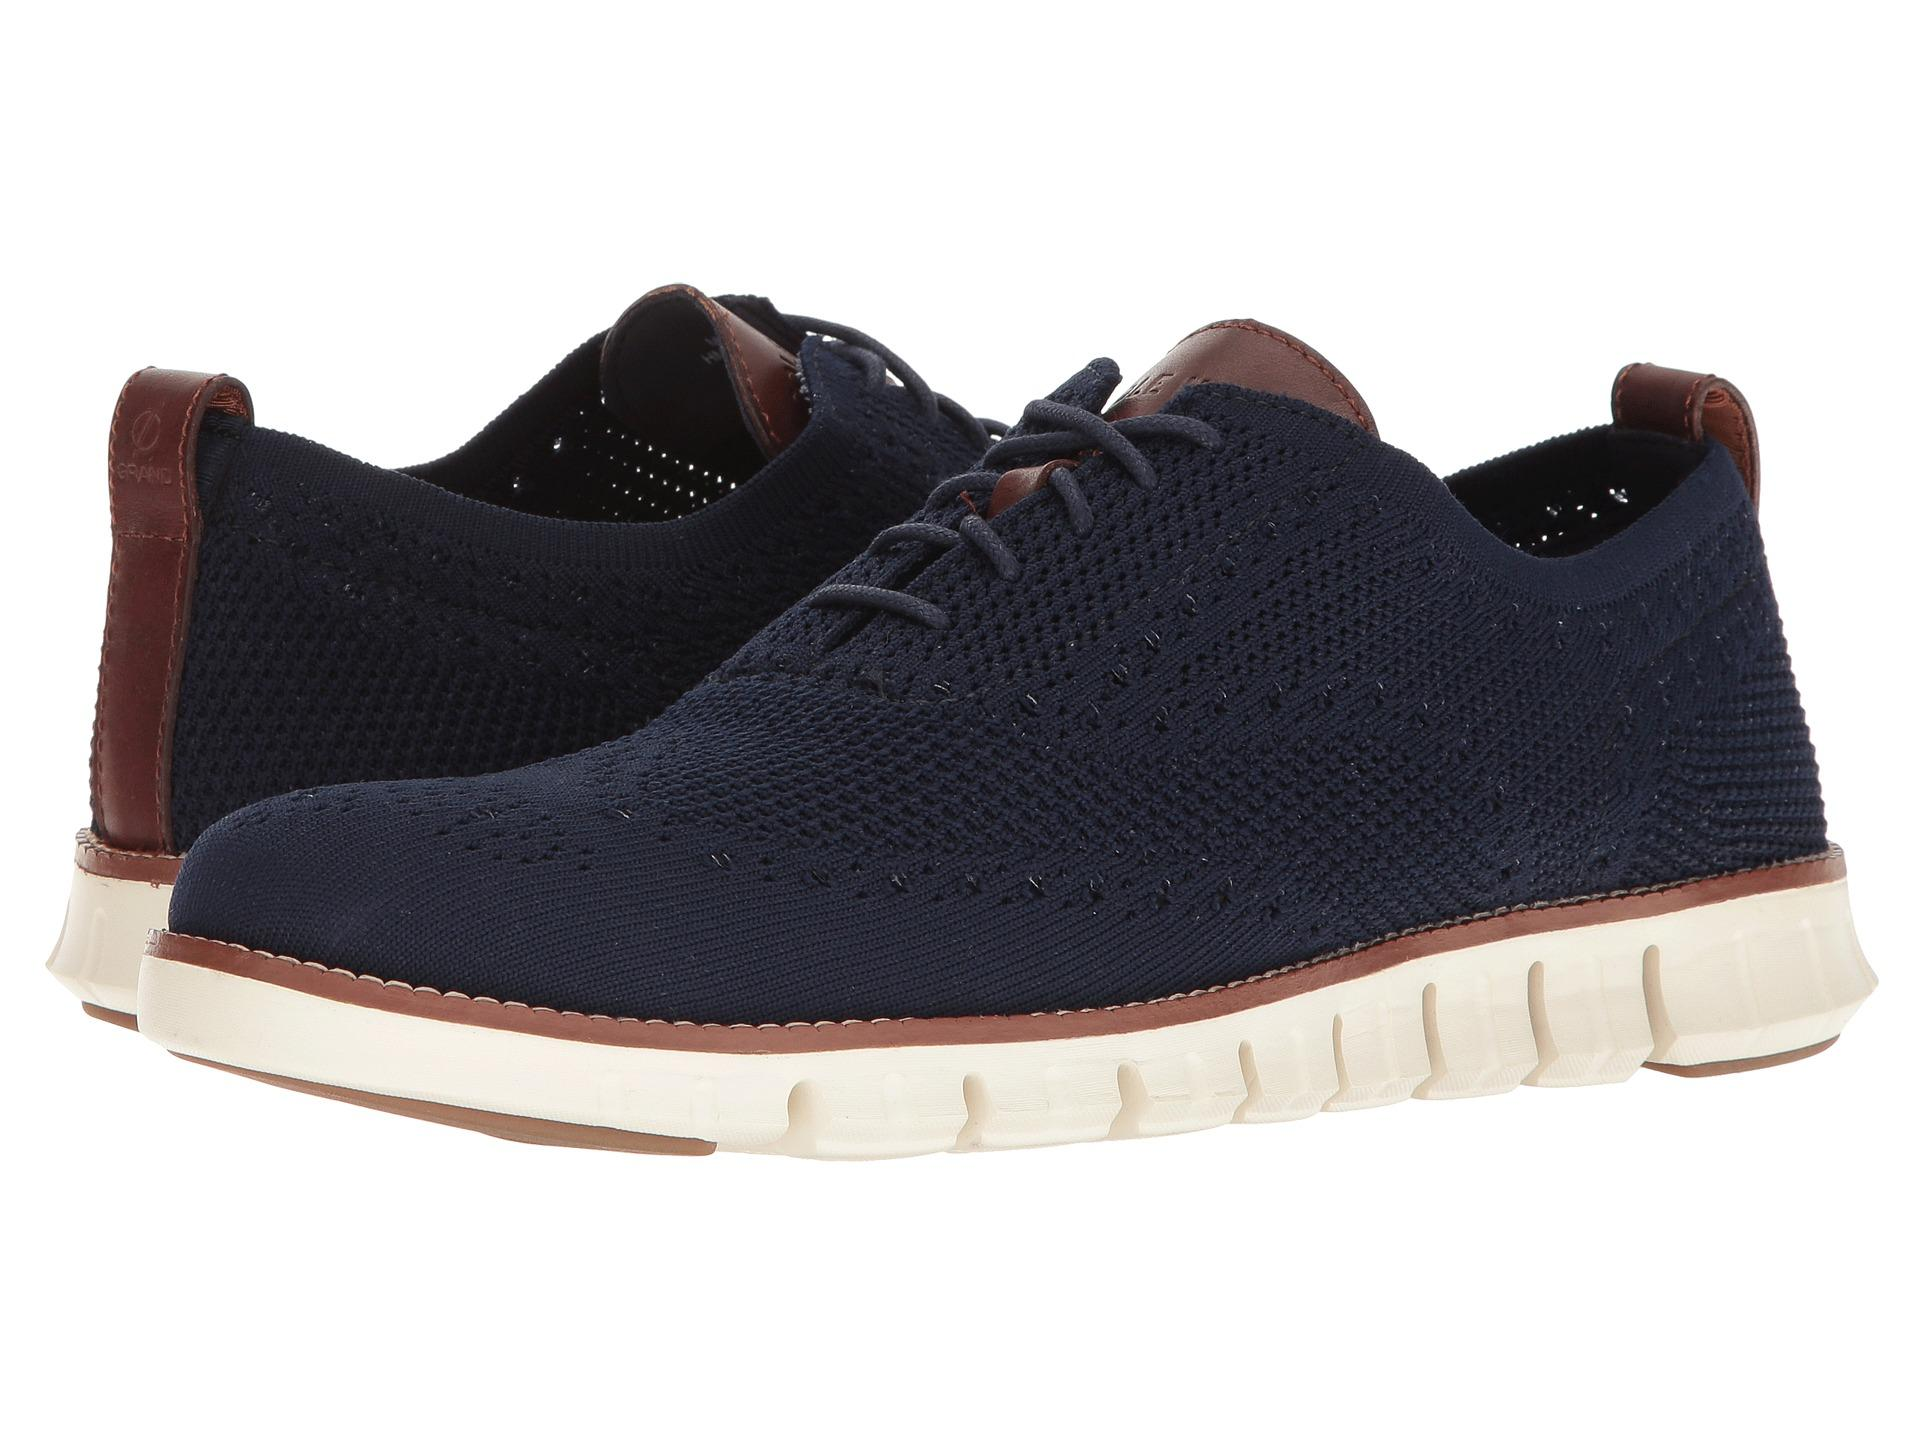 Cole Haan Womens Shoes Zappos